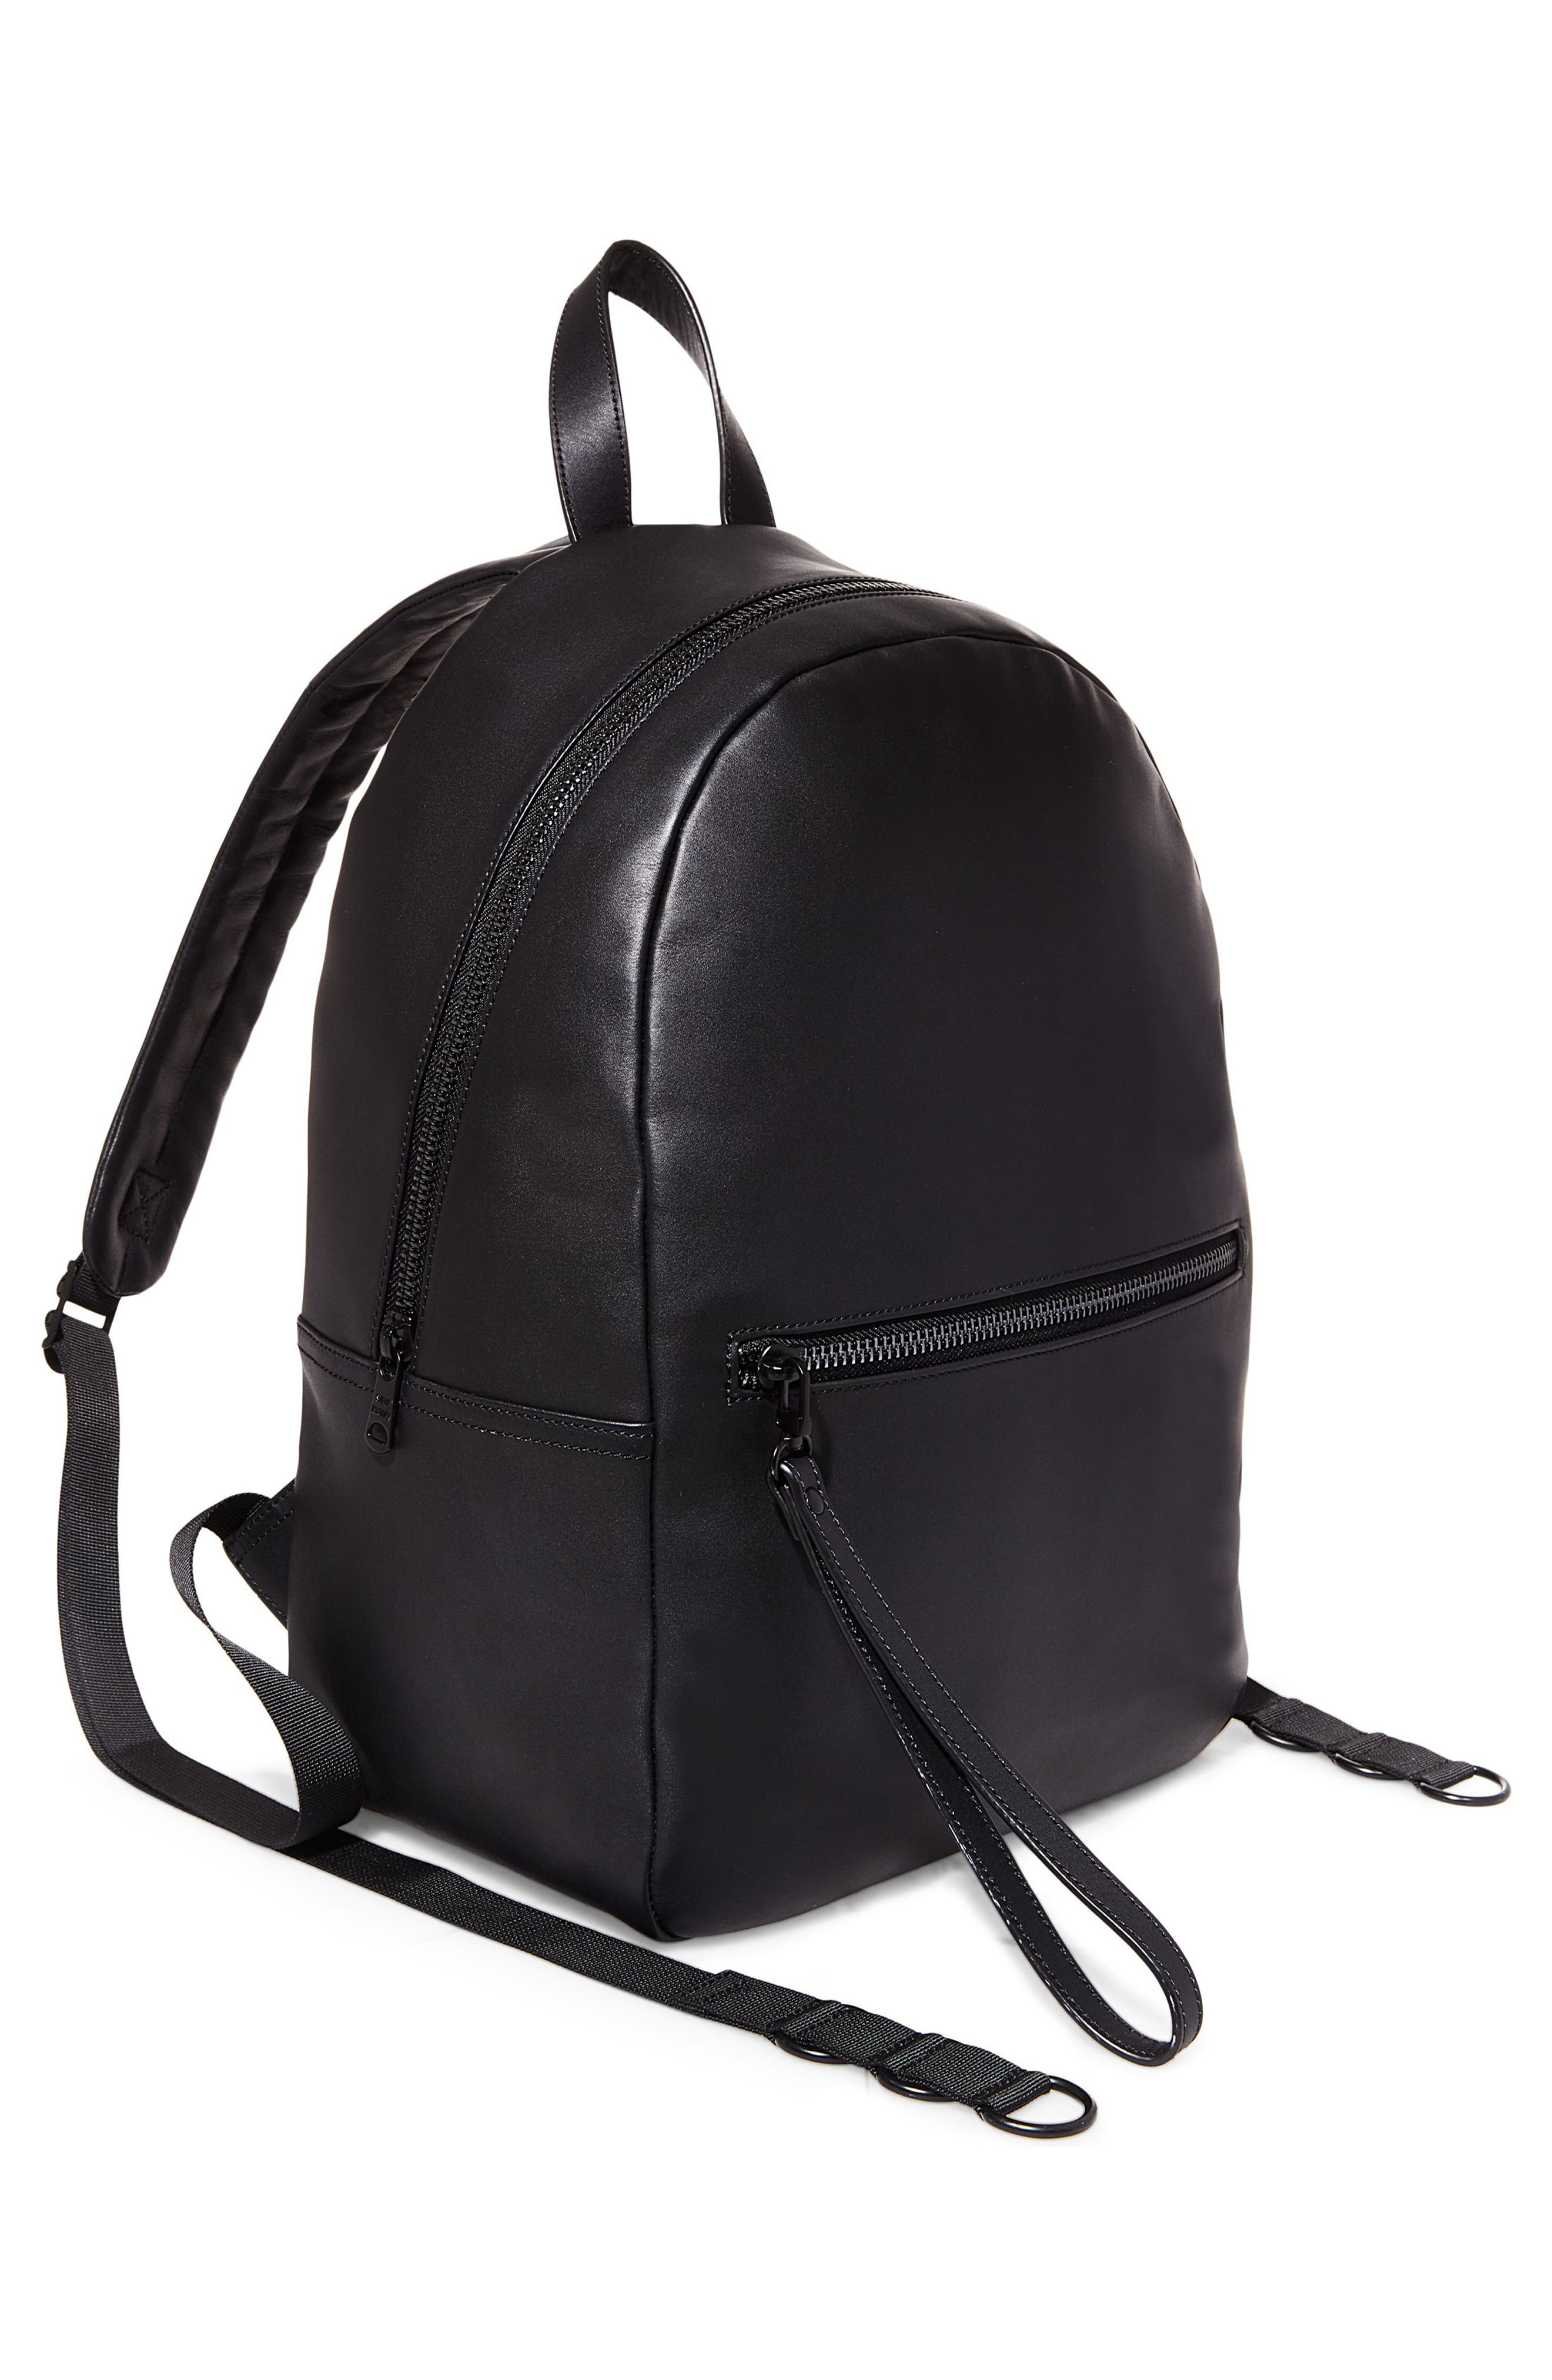 GQ x Steve Madden Leather Backpack,                             Alternate thumbnail 2, color,                             Black